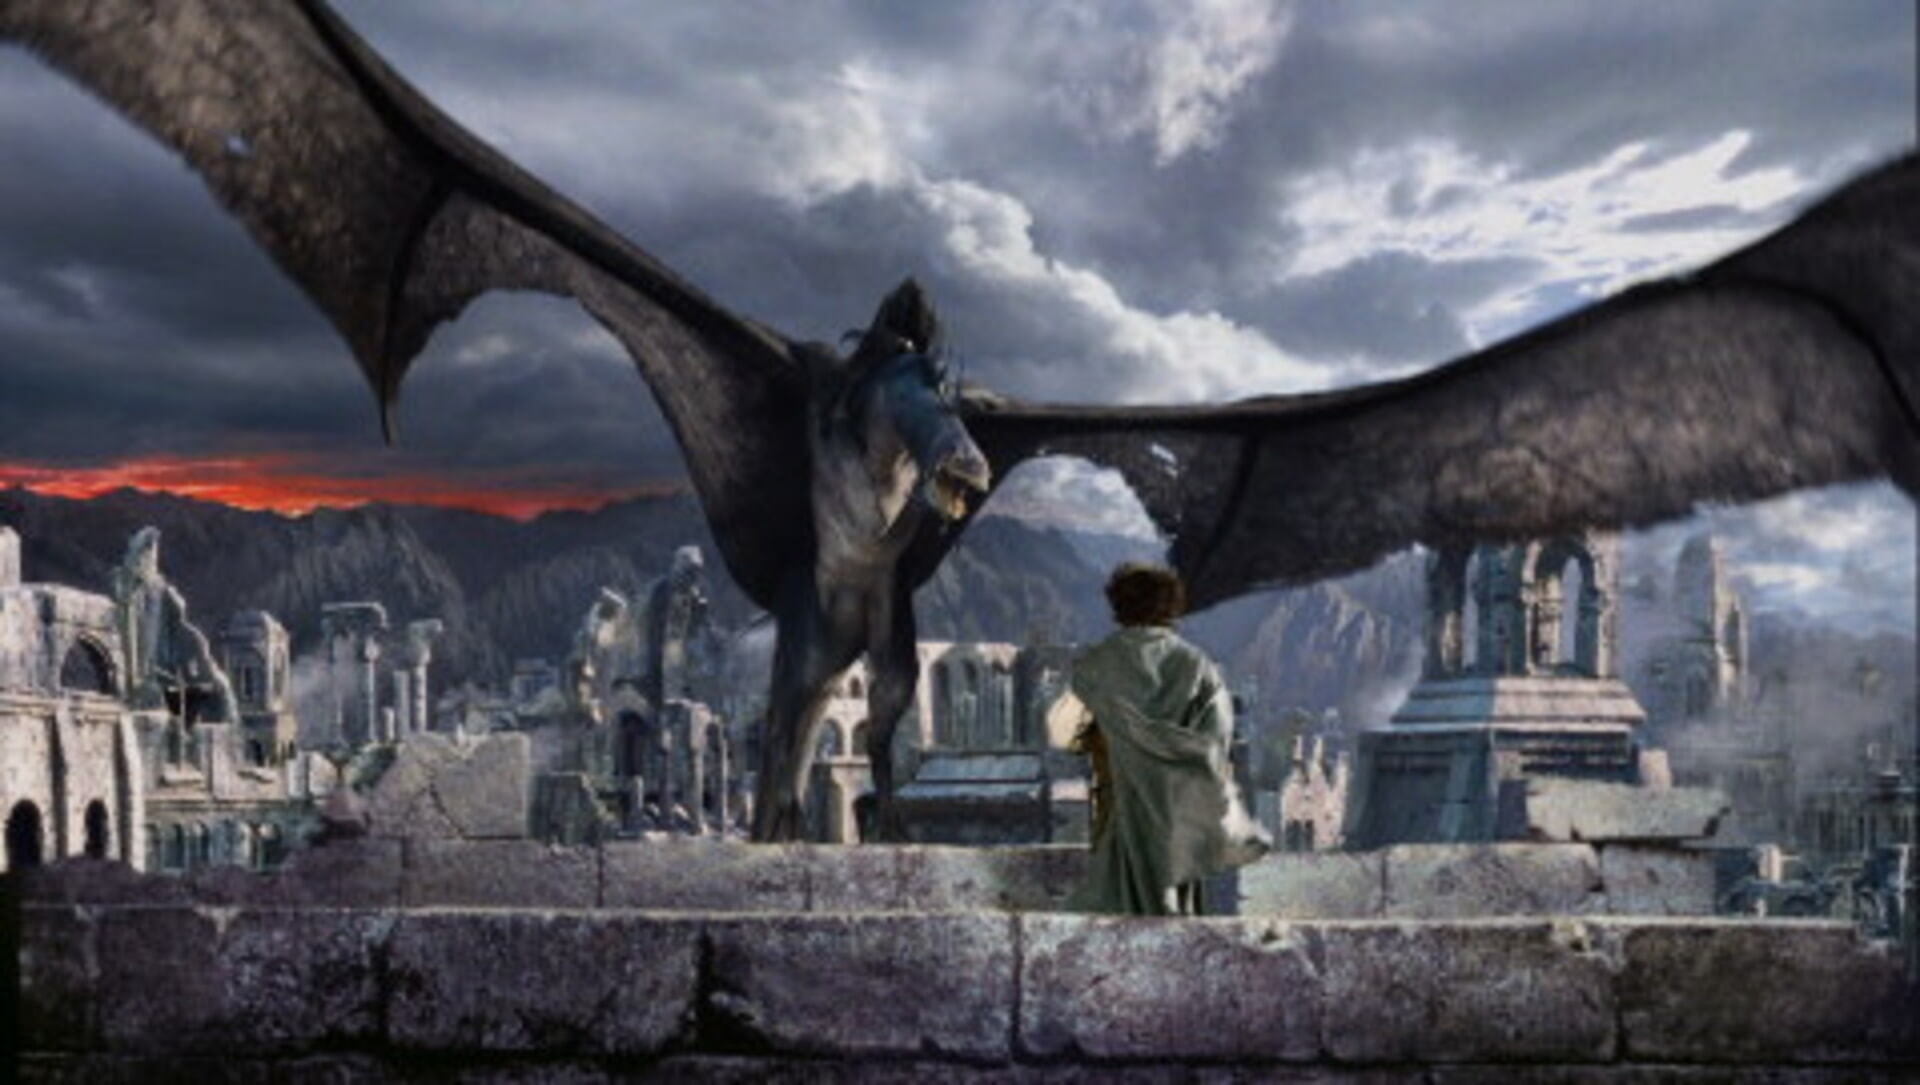 The Lord of the Rings: The Two Towers - Image 38